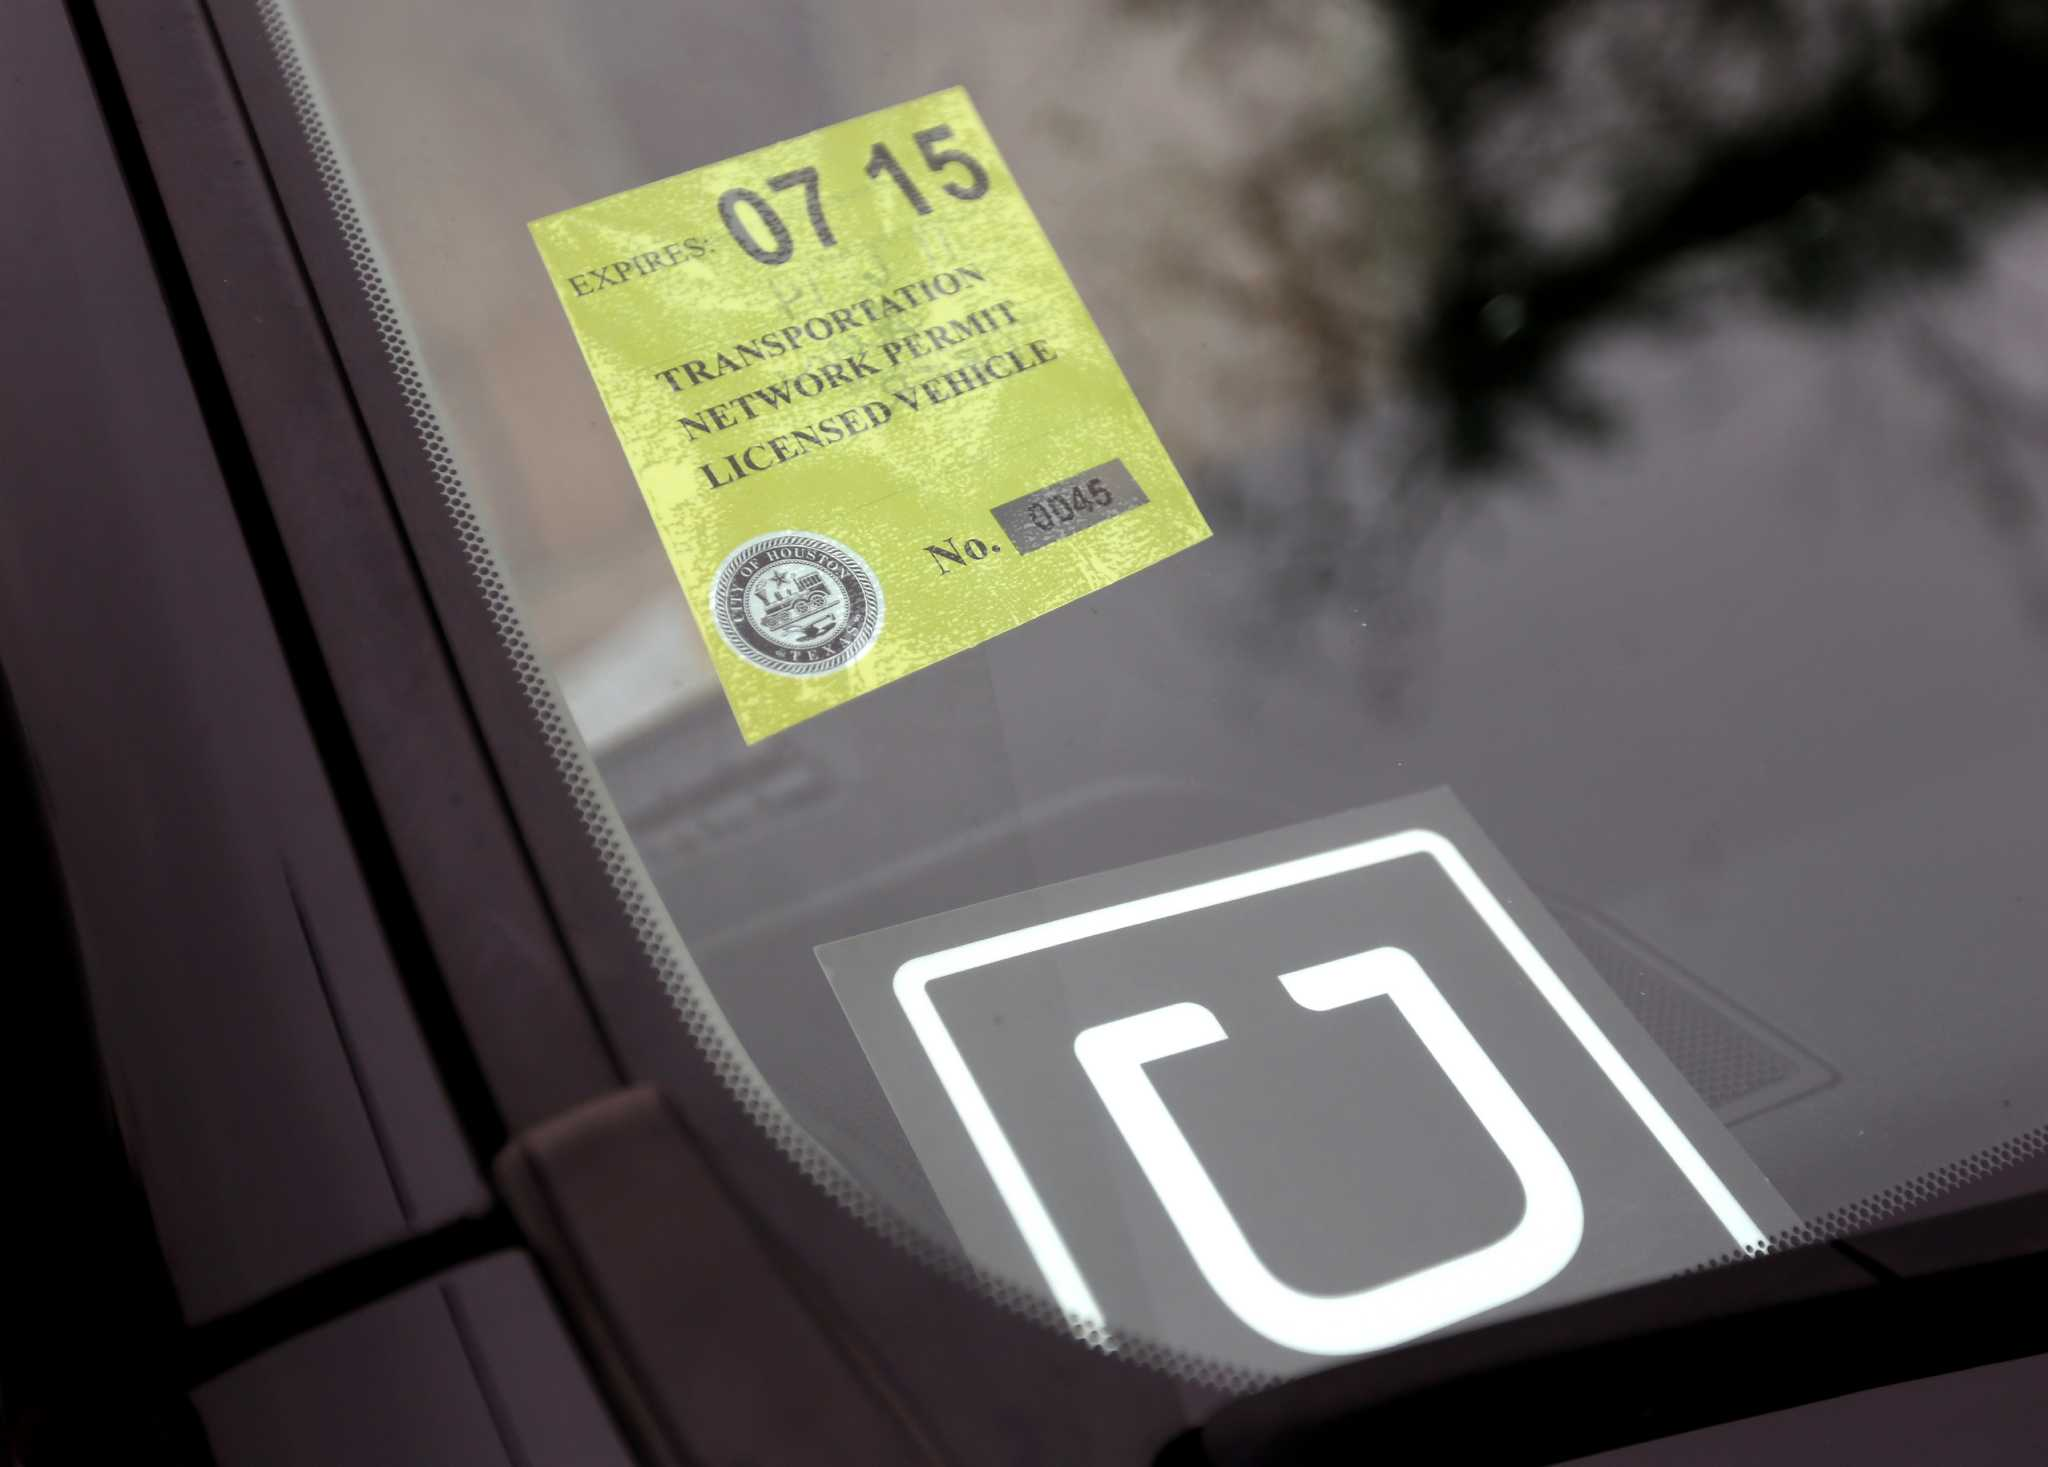 Uber, Lyft could get boost with statewide regulations over